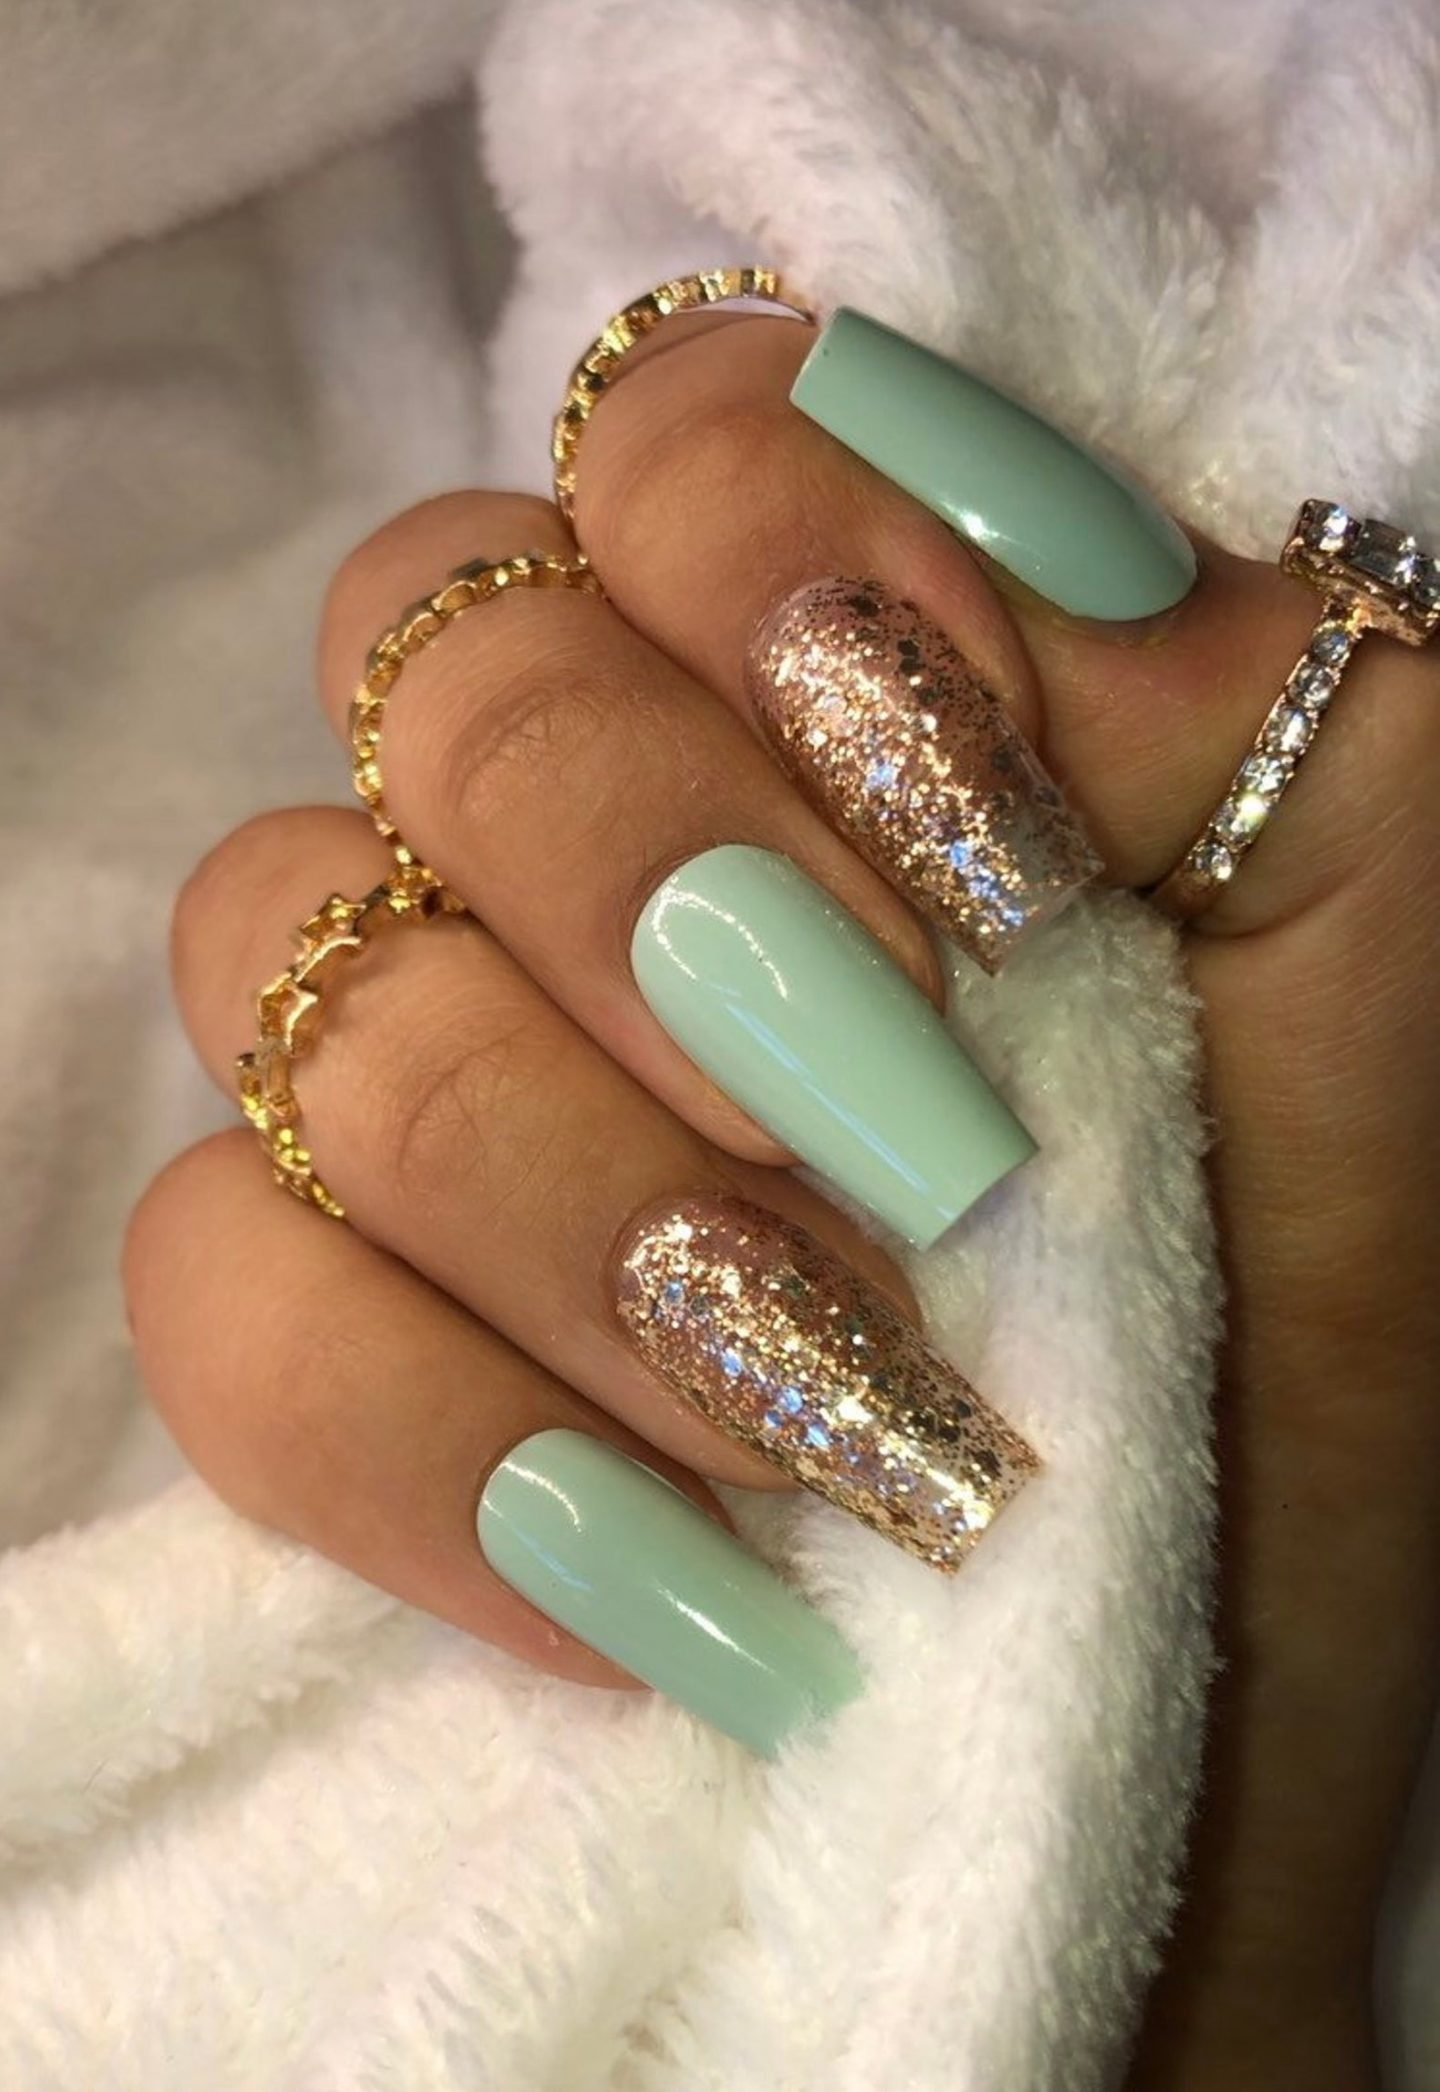 Mint green coffin nails with gold glitter